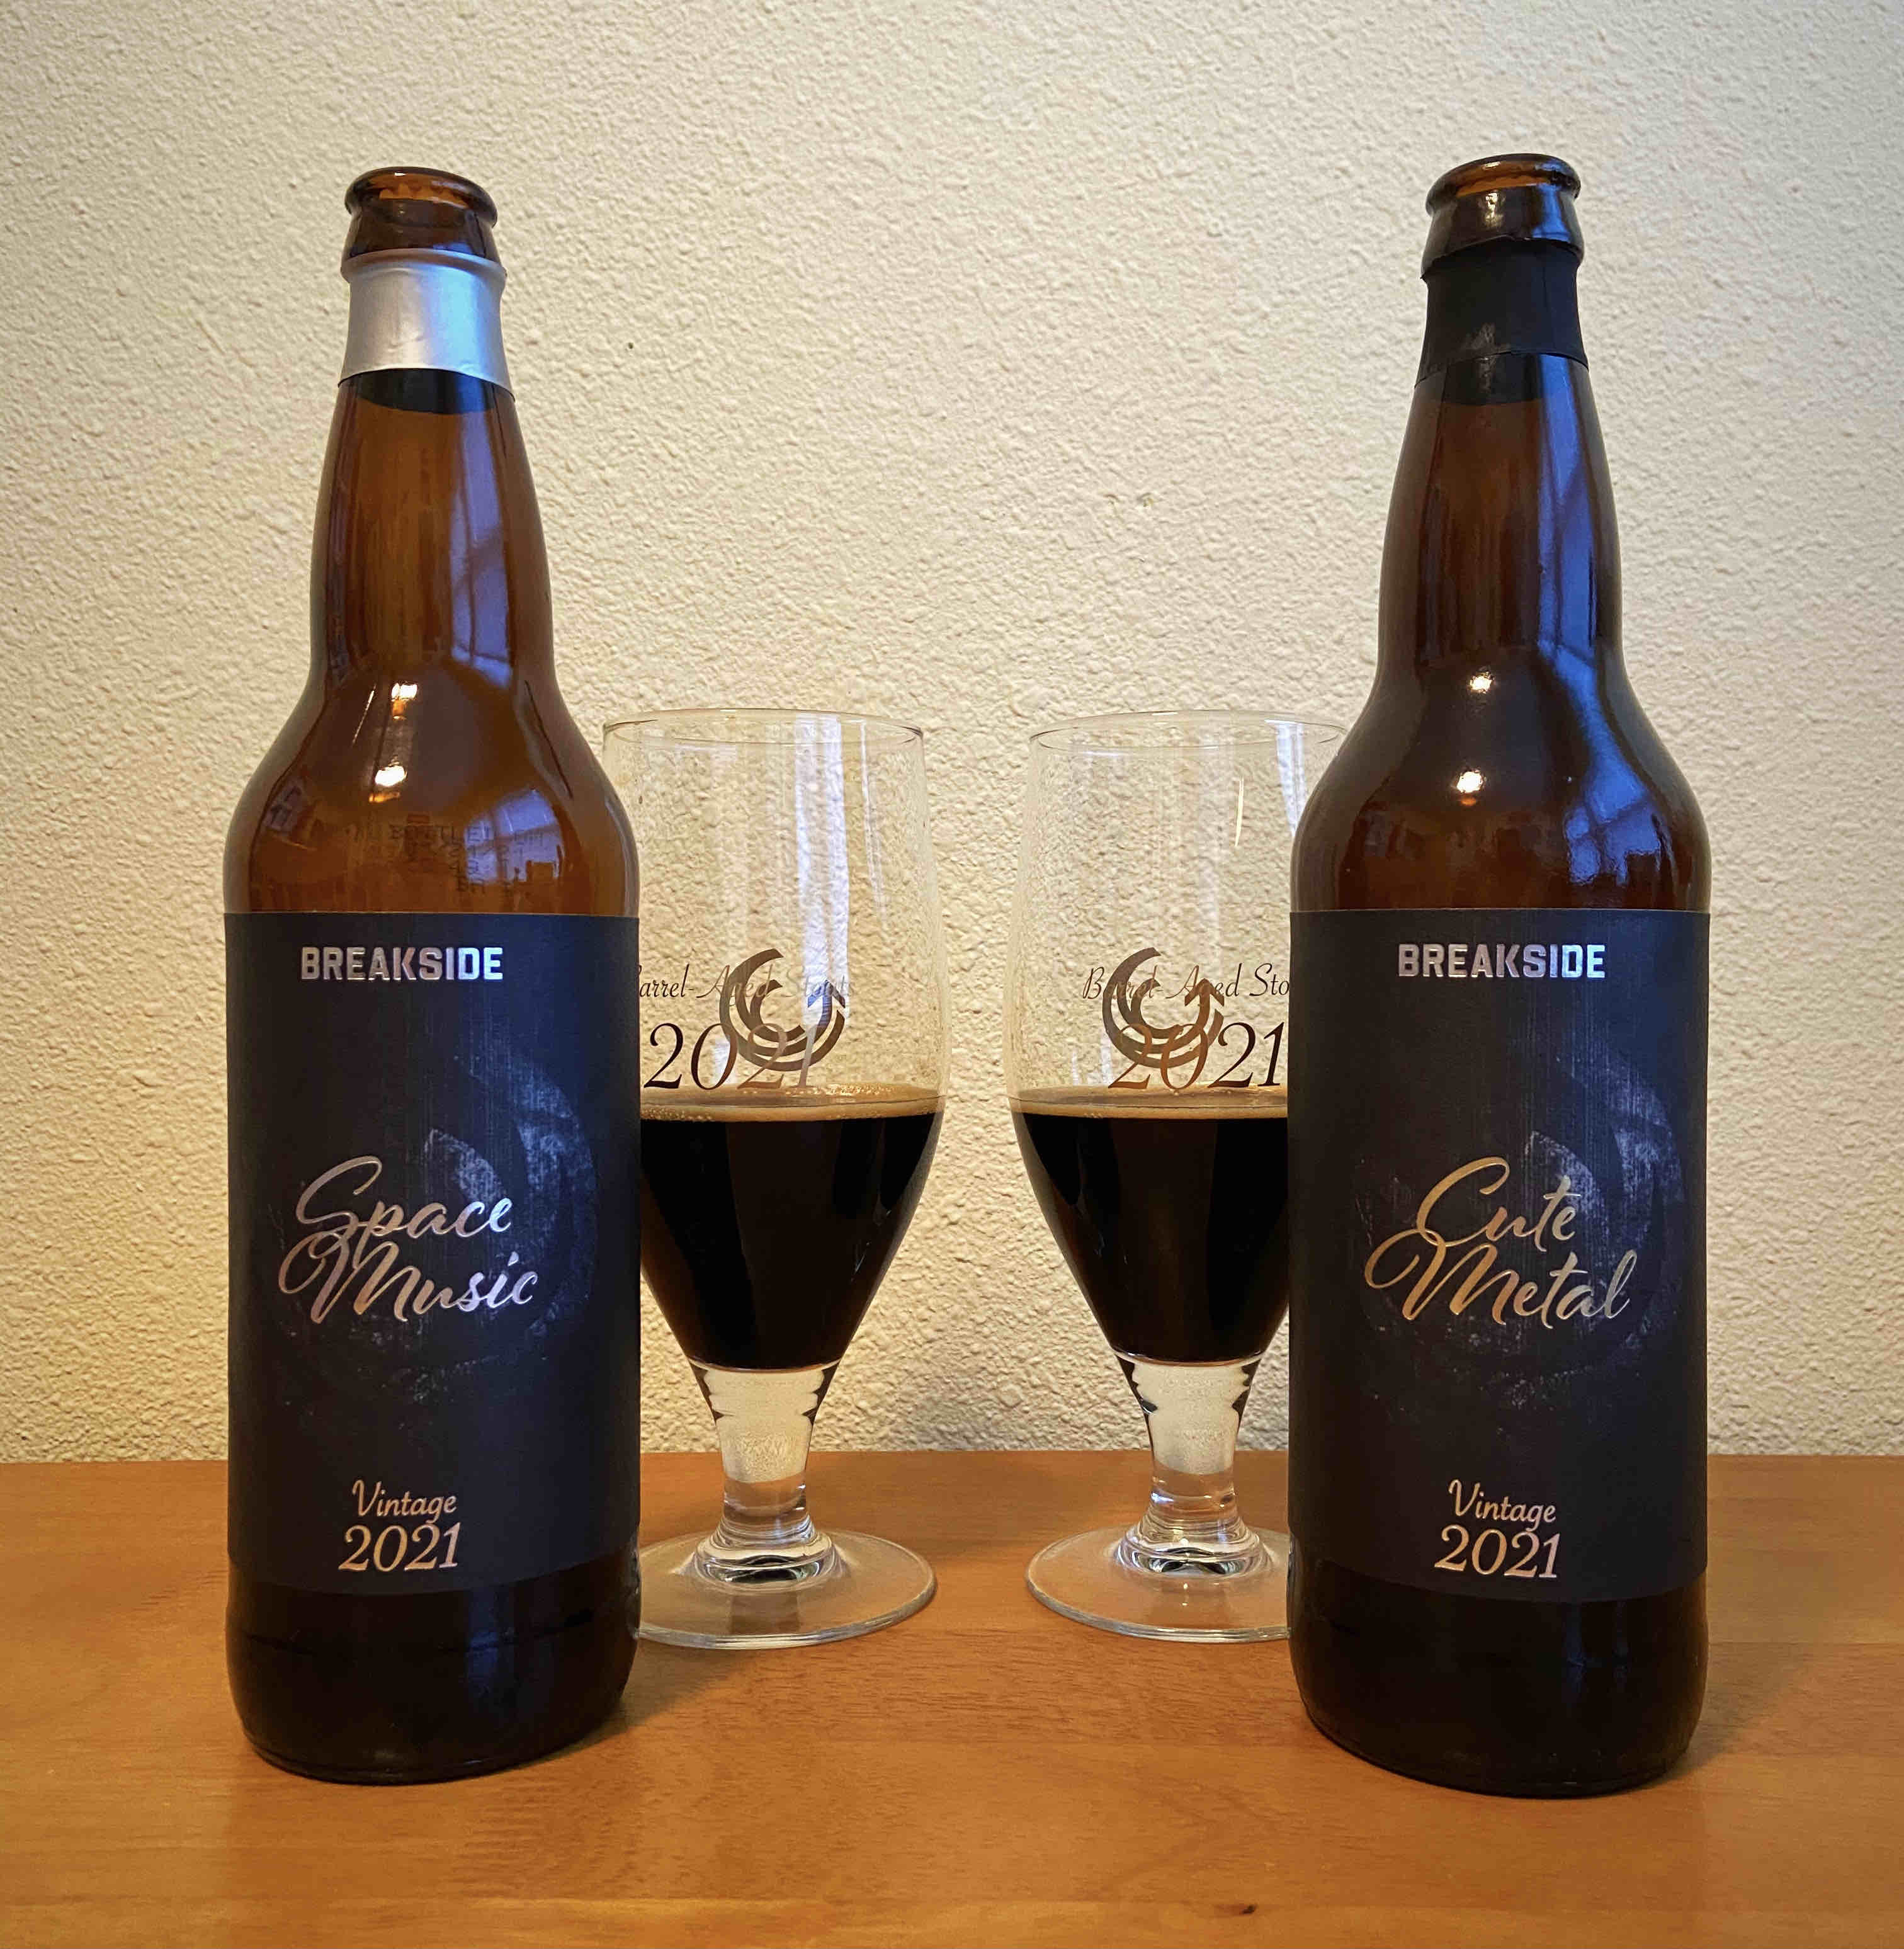 Breakside Brewery revamps its barrel-aging program in 2021. The first two releases are Space Music and Cute Metal, both in 22oz bottles.